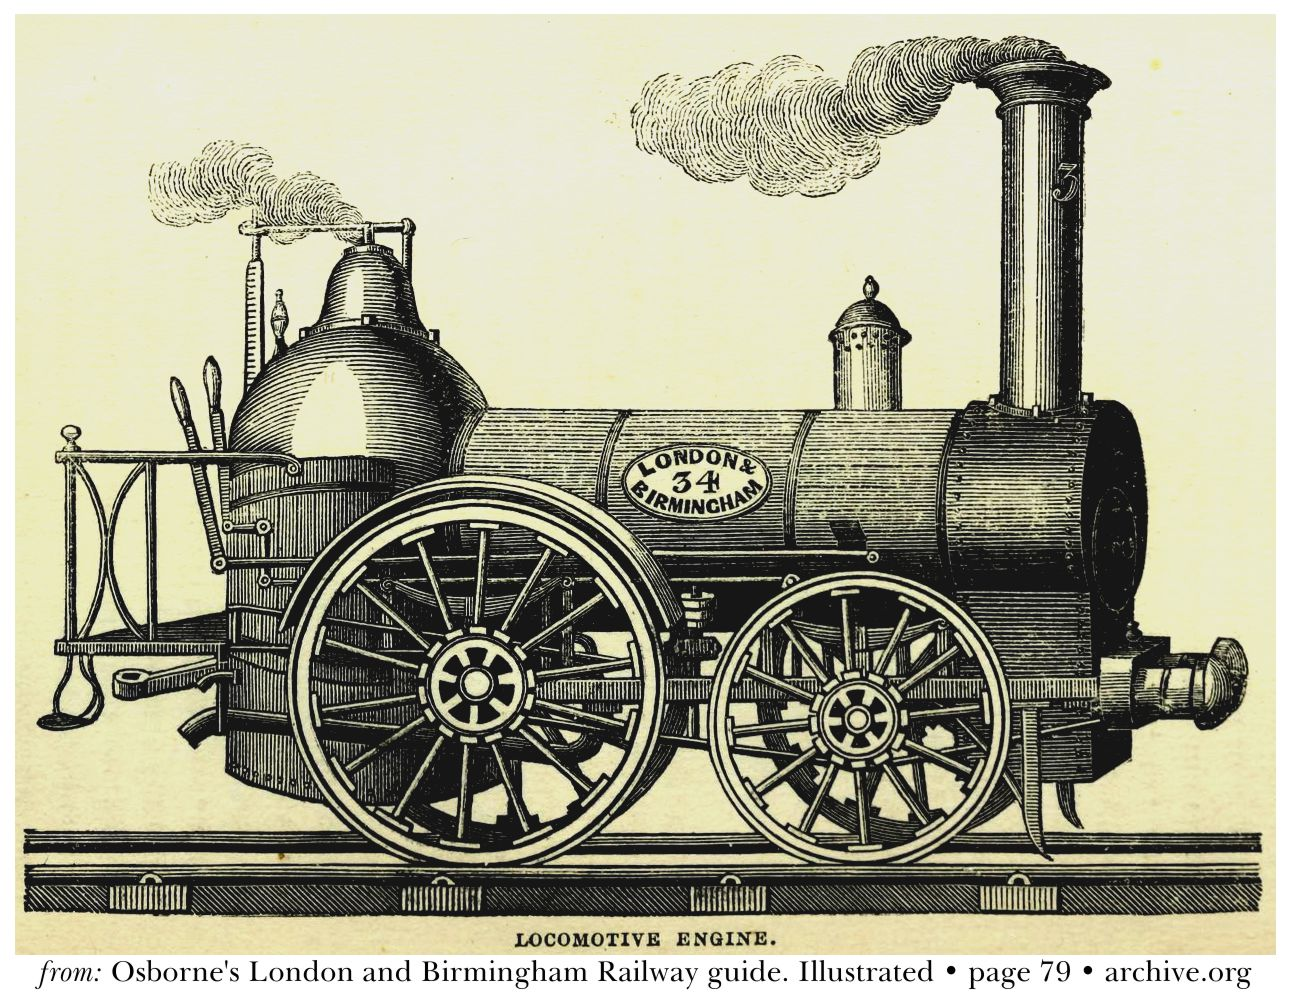 London & Birmingham Railway, Locomotive 34